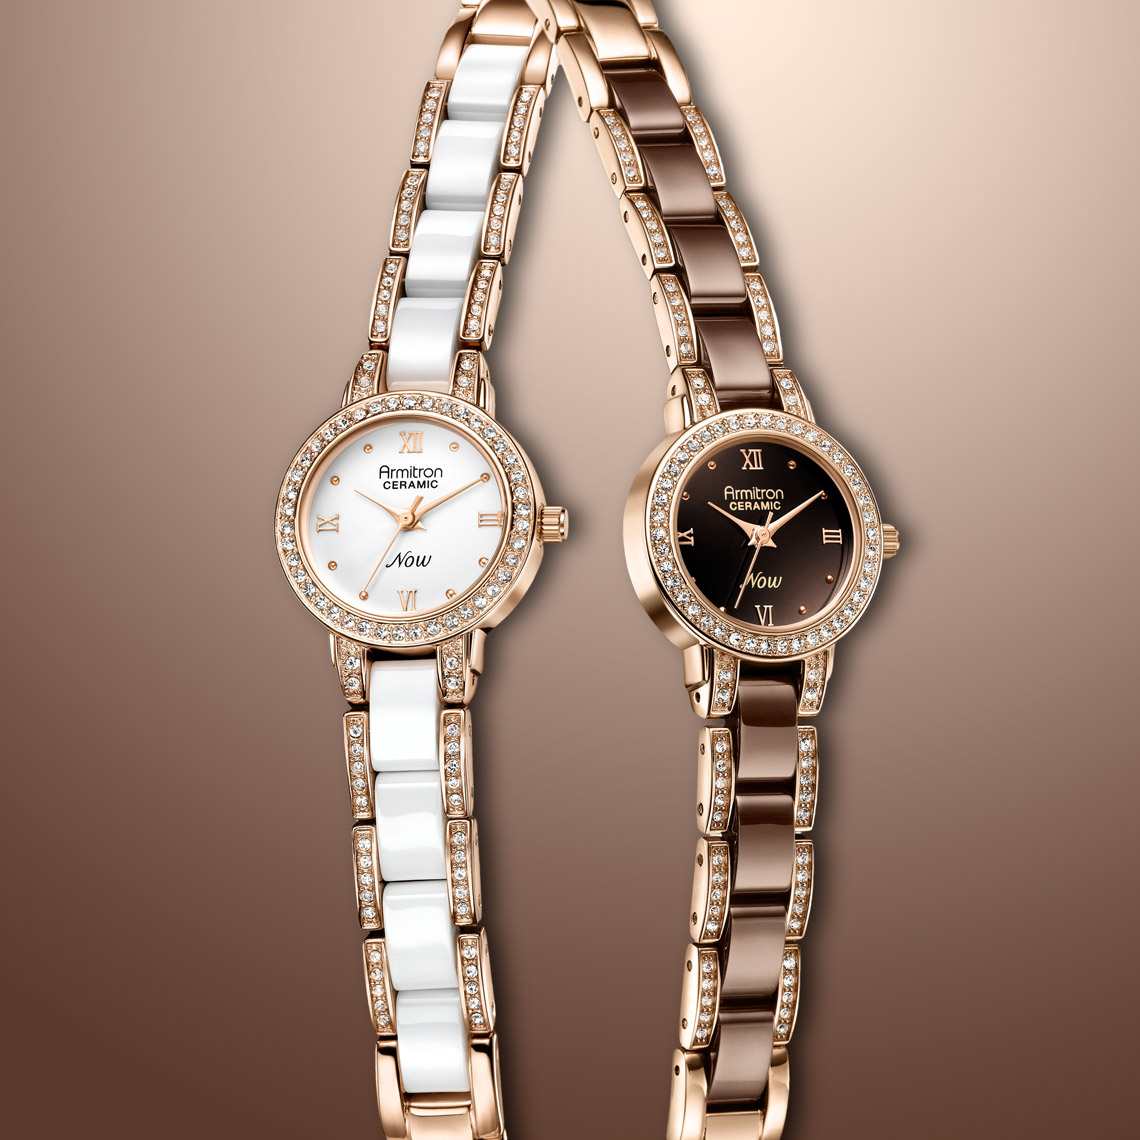 Advertising product photography - Armitron ceramic watches beauty shot brochure and display